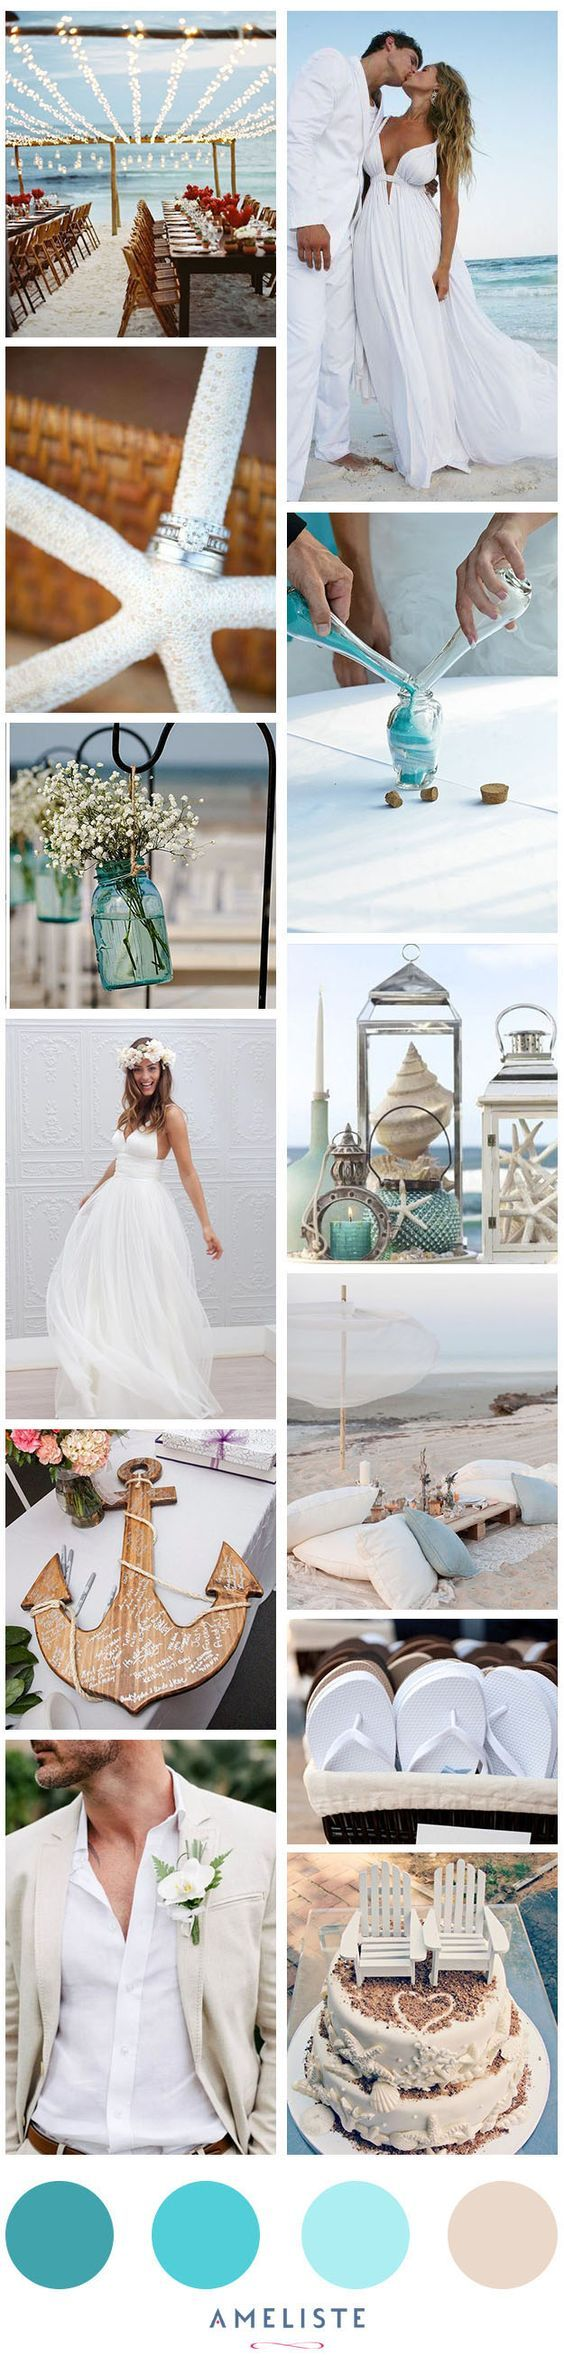 No te pierdas las ideas #innovias para tu boda en la playa https://innovias.wordpress.com/2015/05/18/ideas-innovias-para-una-boda-en-la-playa/